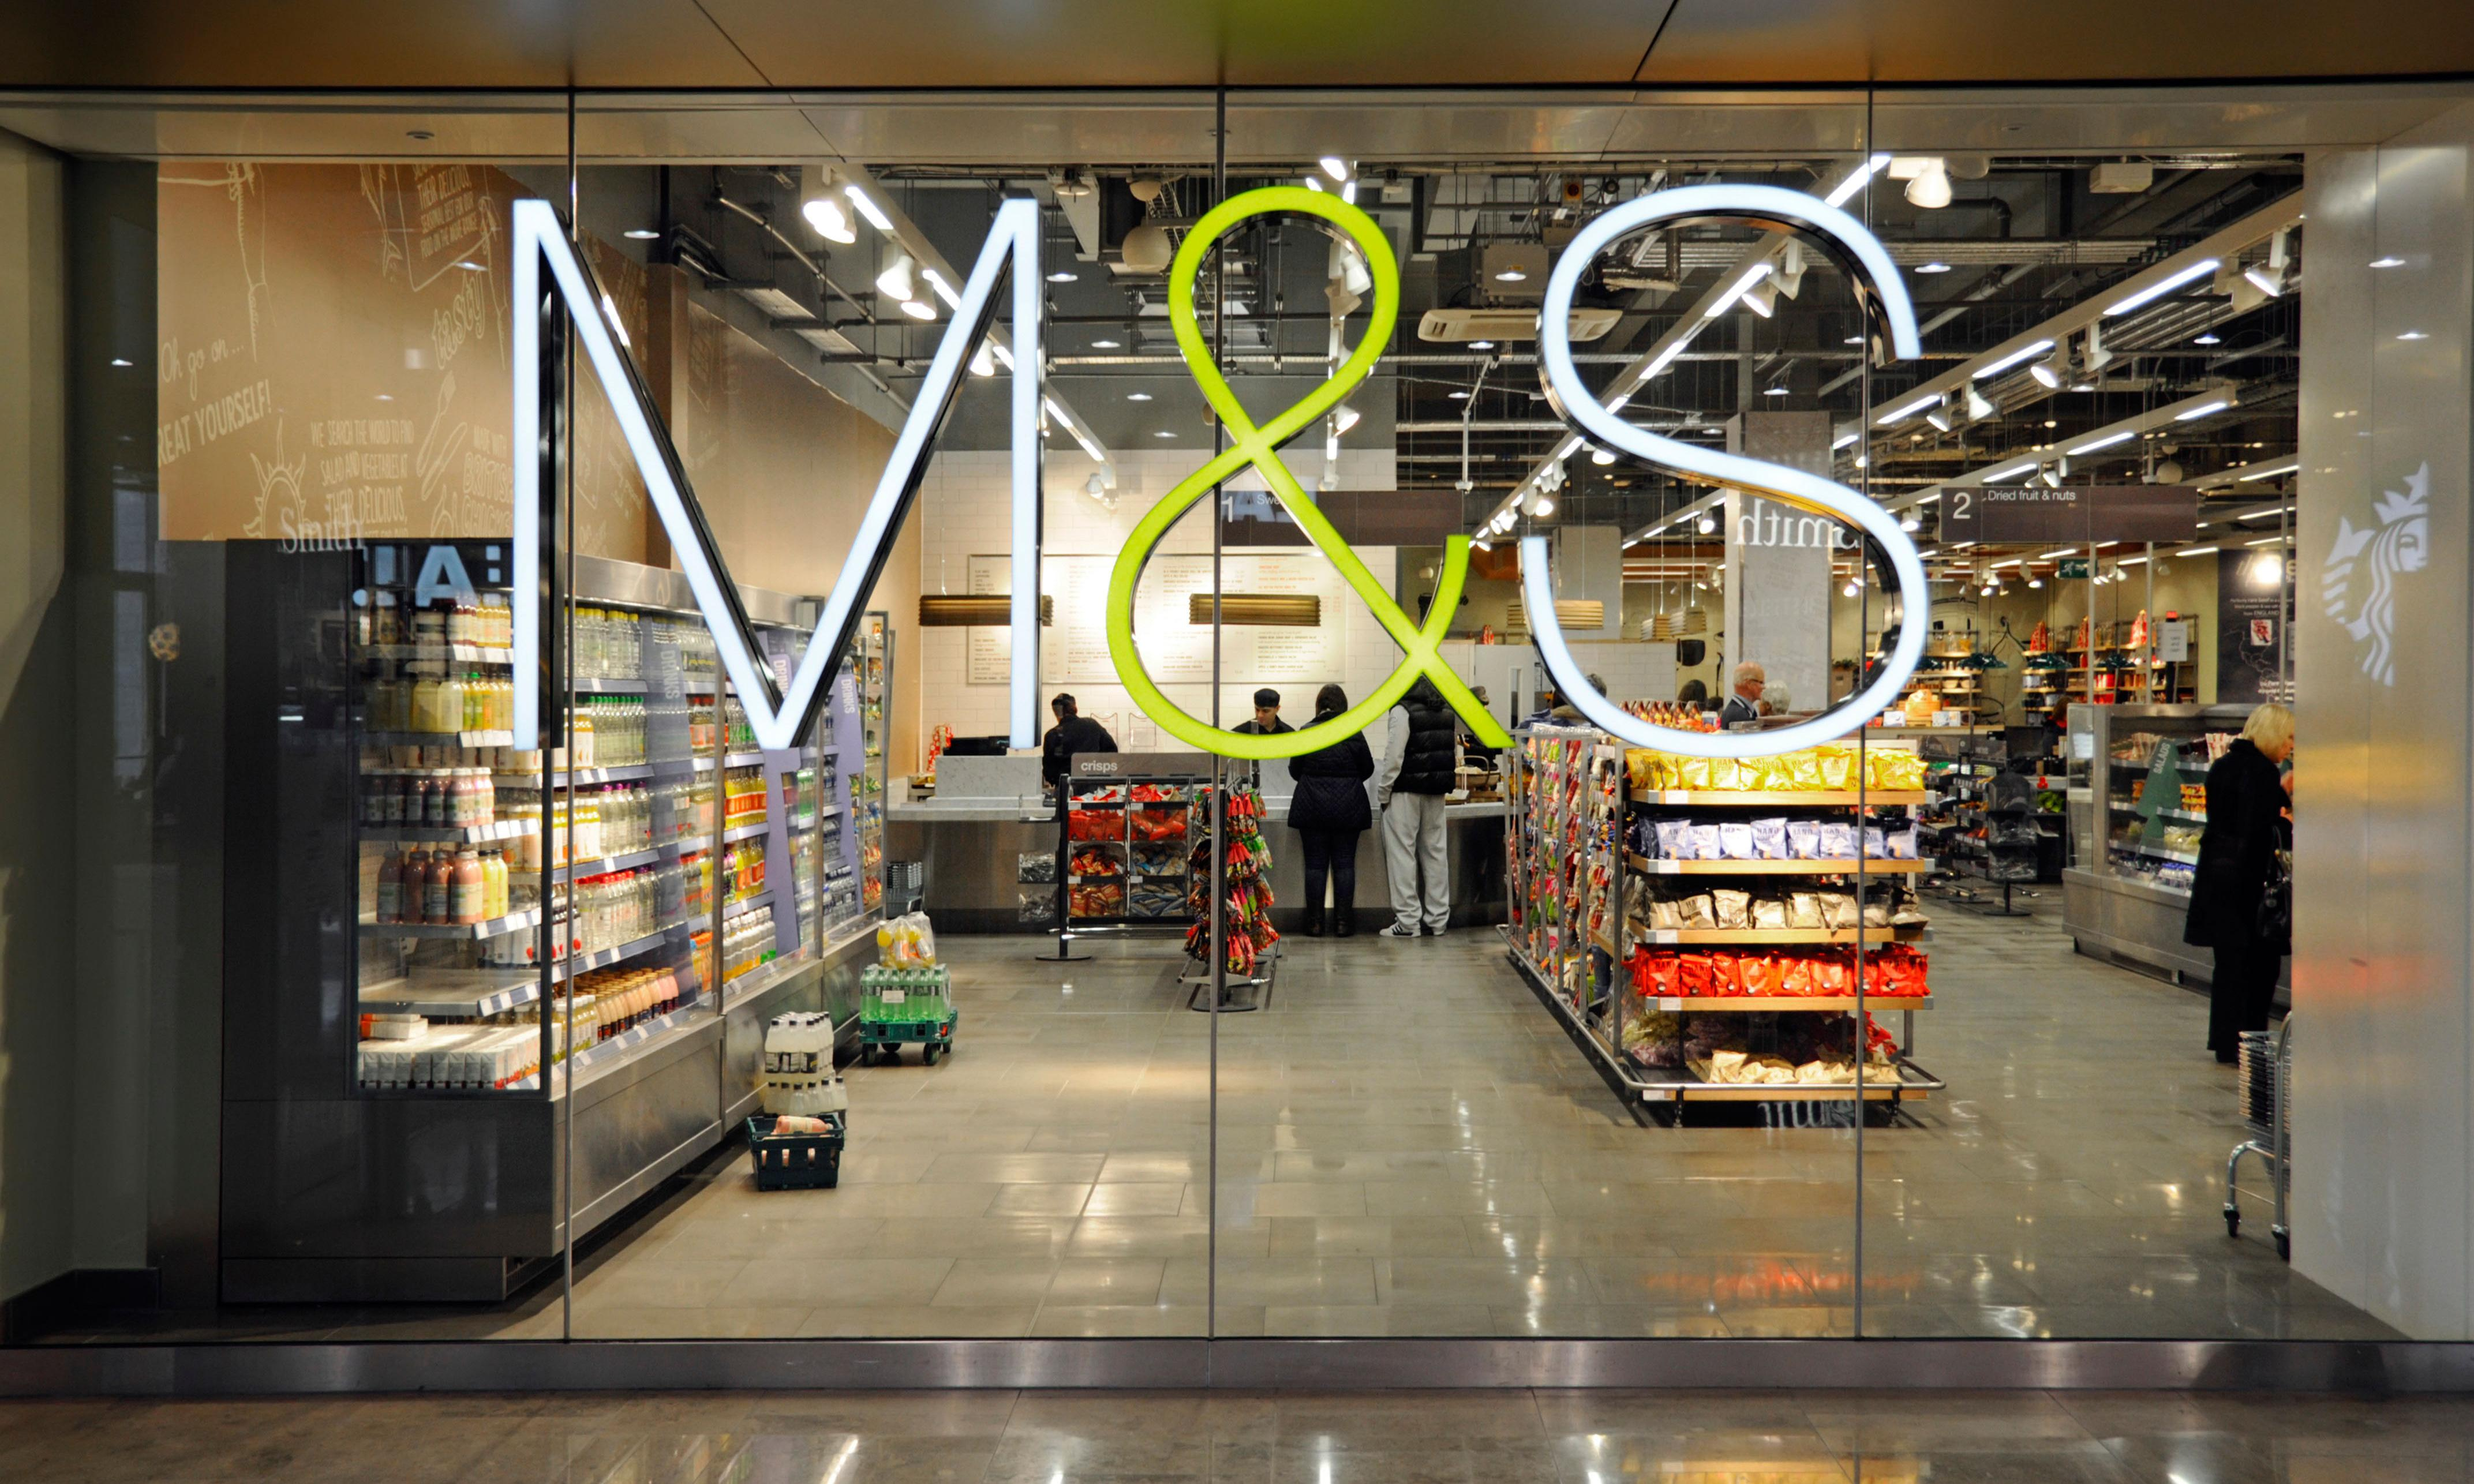 Chummy automation: why no one wants Ant and Dec to voice the M&S tills